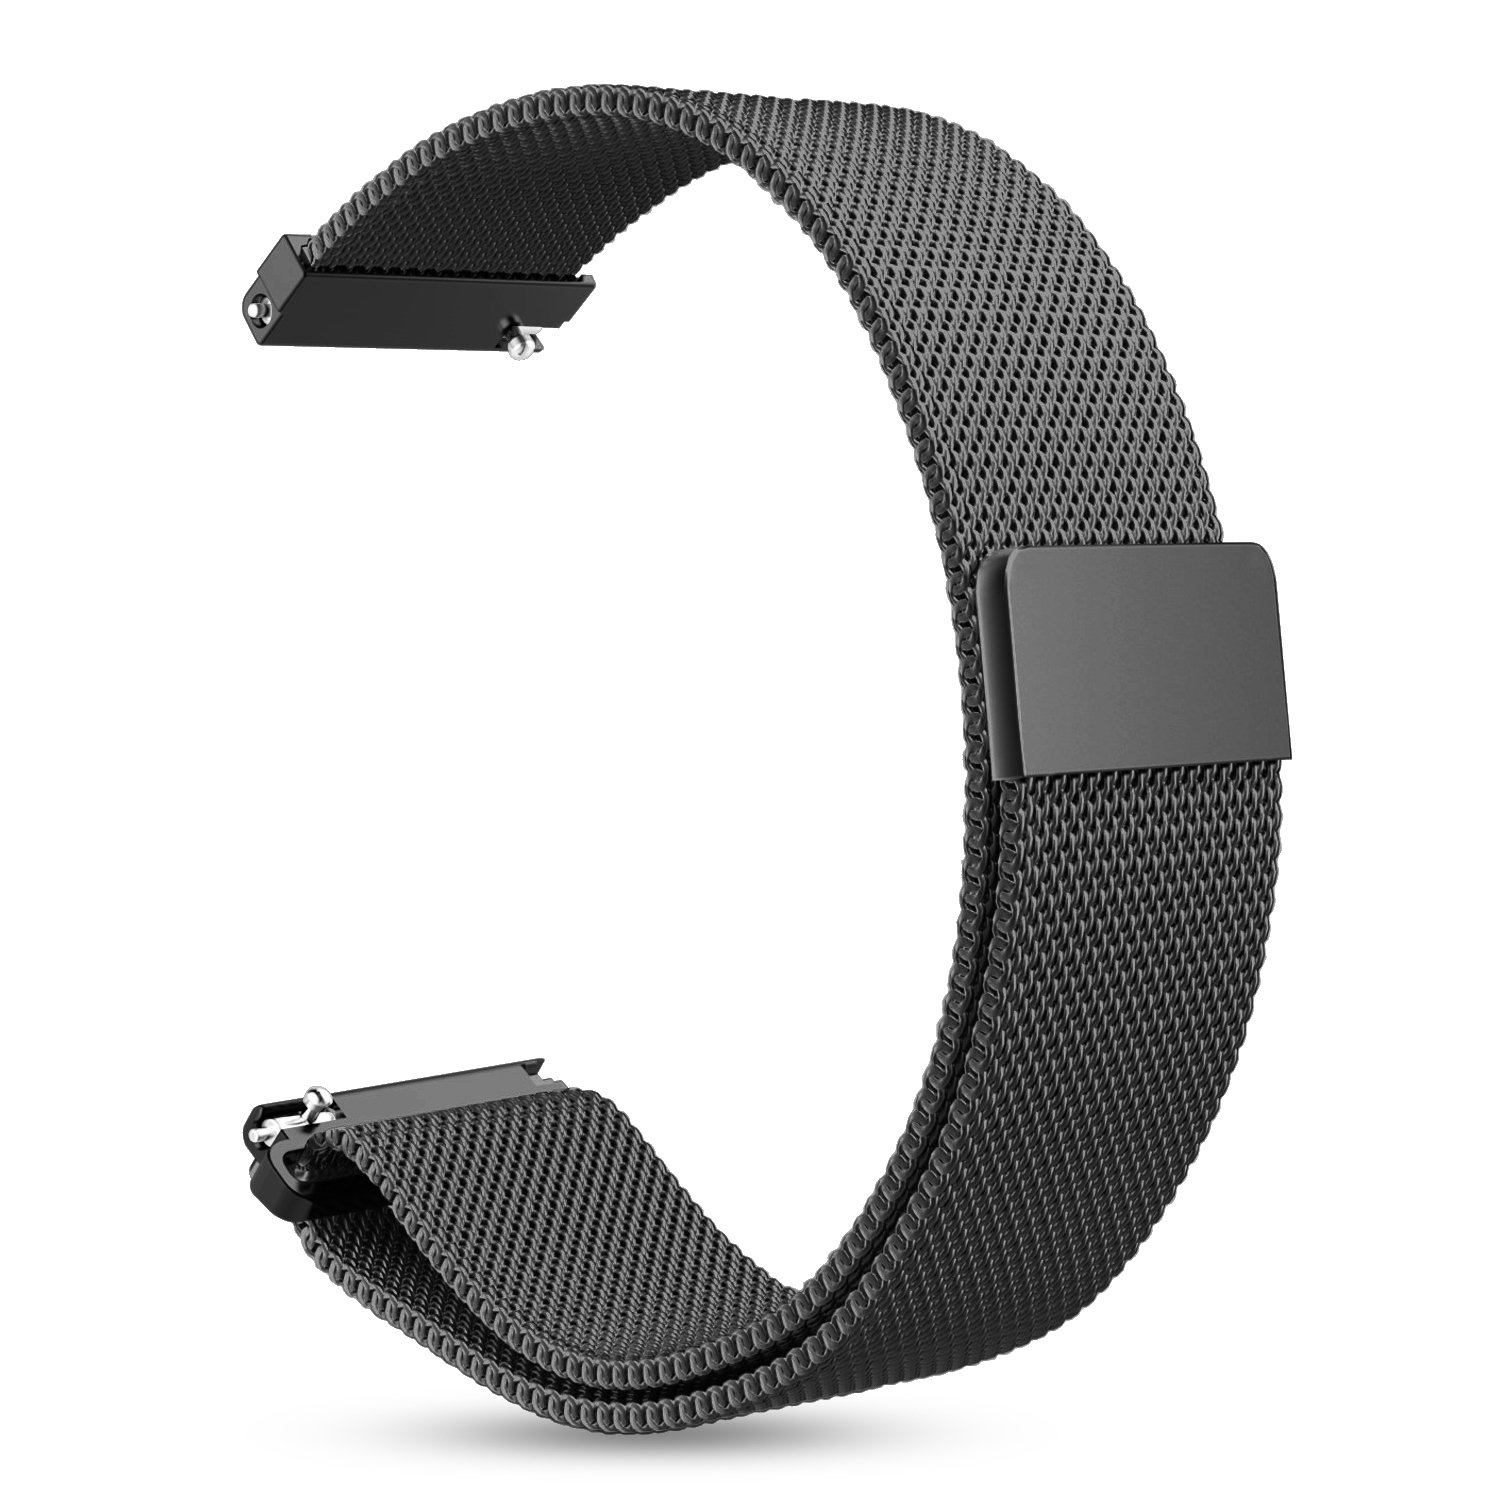 Gear Sport/Gear S2 Classic Watch Band, Fintie 20mm Milanese Loop Adjustable Stainless Steel Replacement Strap Bands for Samsung Gear Sport/Gear S2 Classic Smartwatch - Black